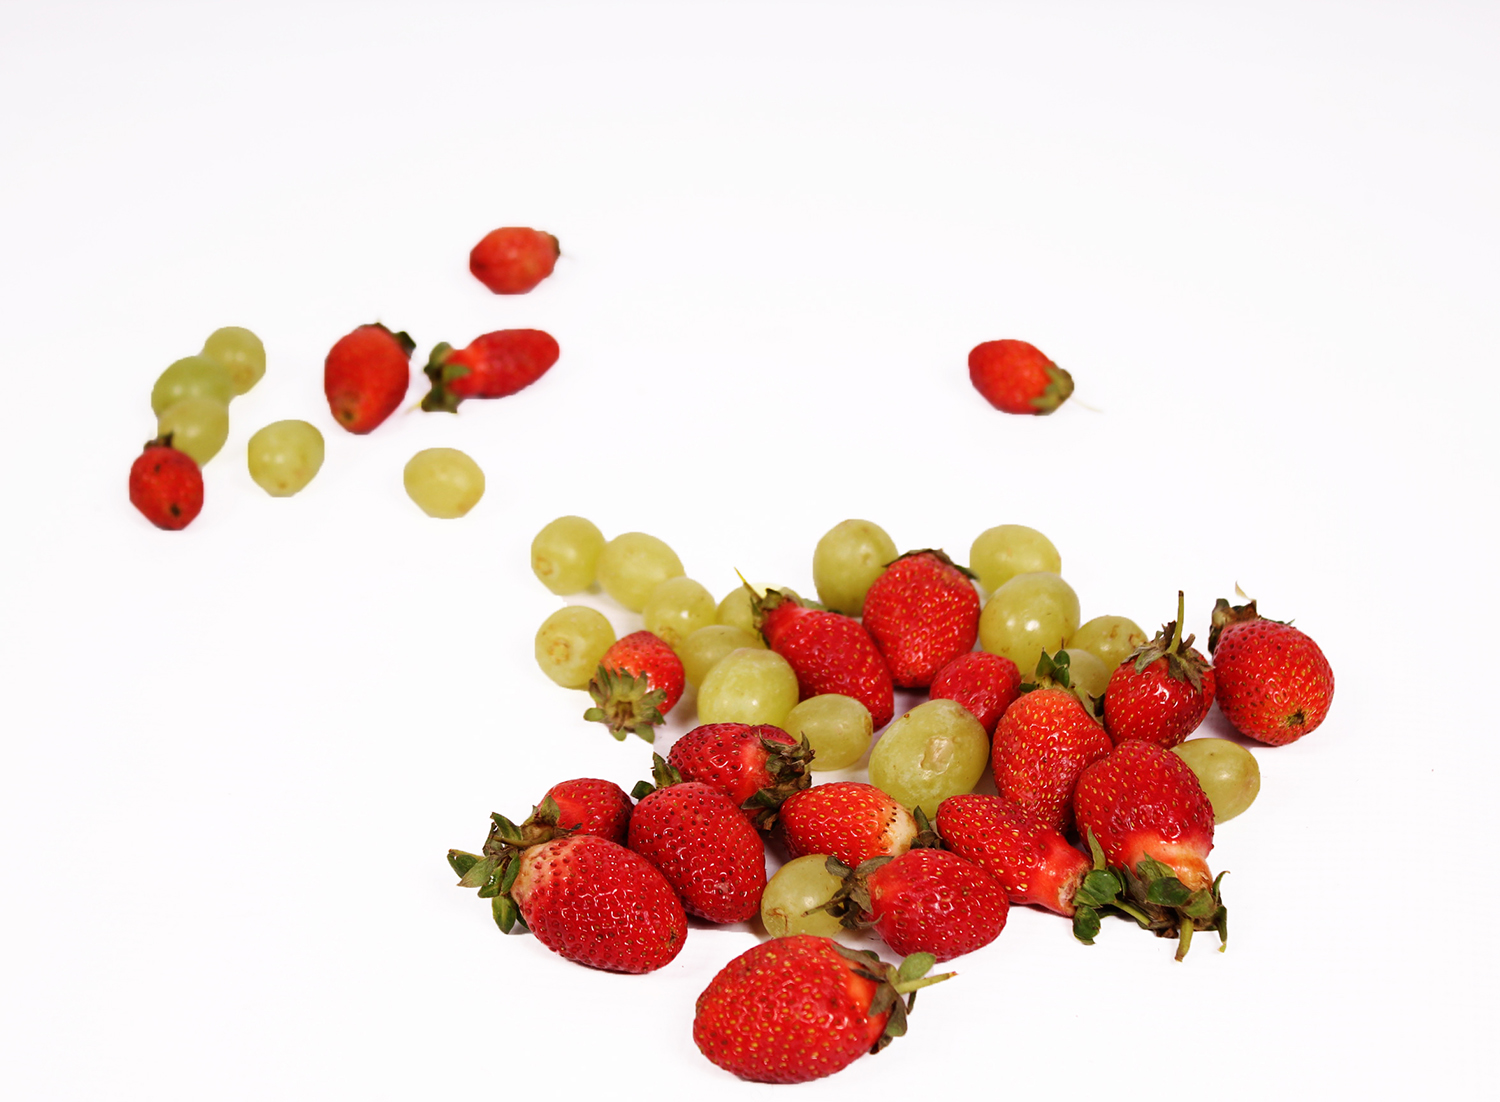 Strawberries and green grapes on white background